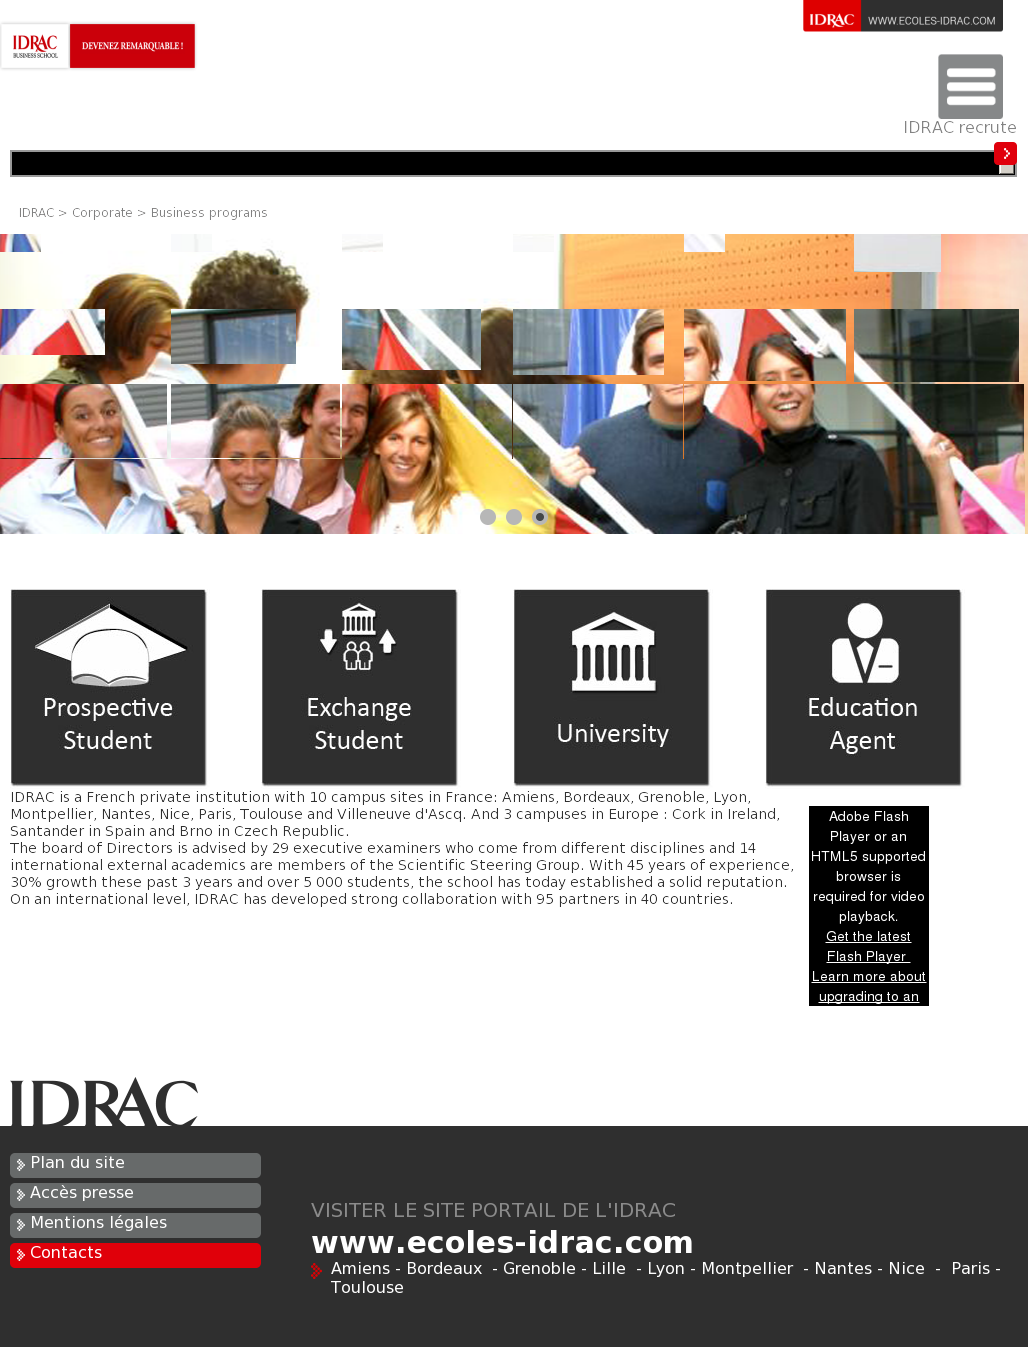 Idrac Business School Competitors, Revenue and Employees